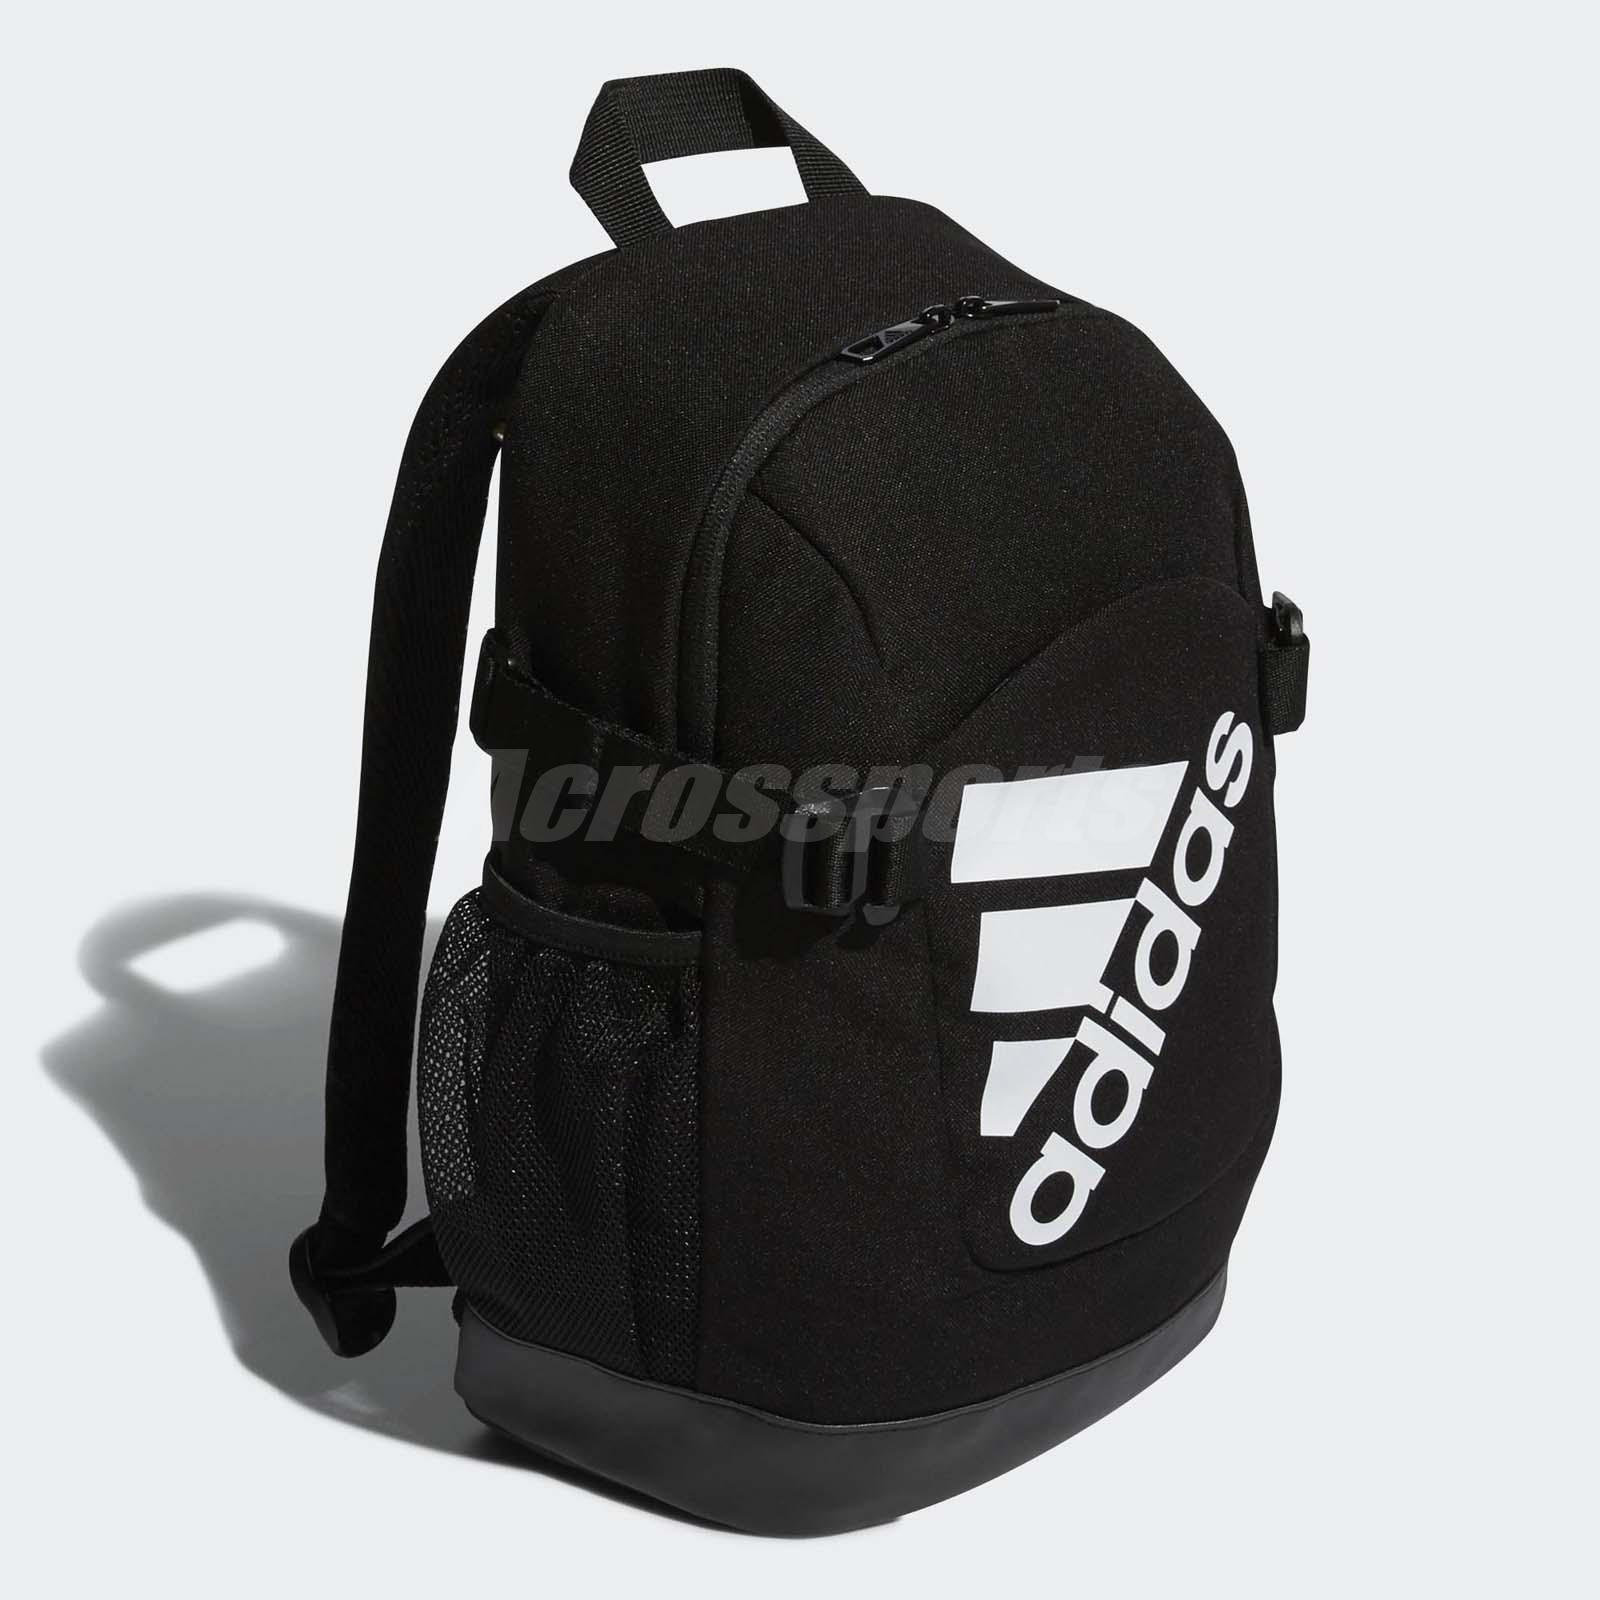 adidas Power Backpack Training Workout Fitness Gym Running Bag Black ... 776e642a91b0c